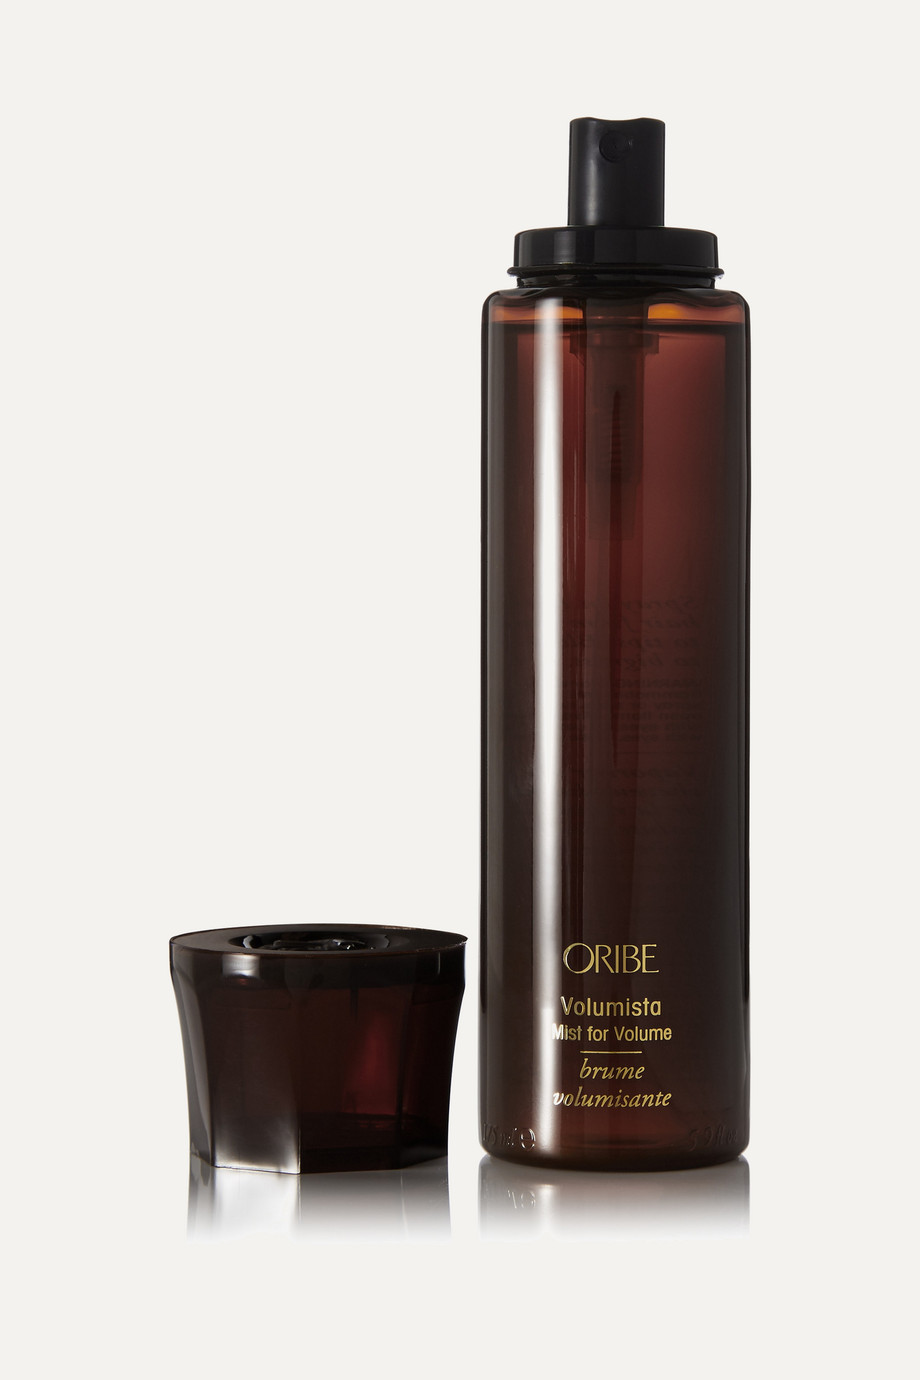 Oribe Volumista Mist for Volume, 175ml